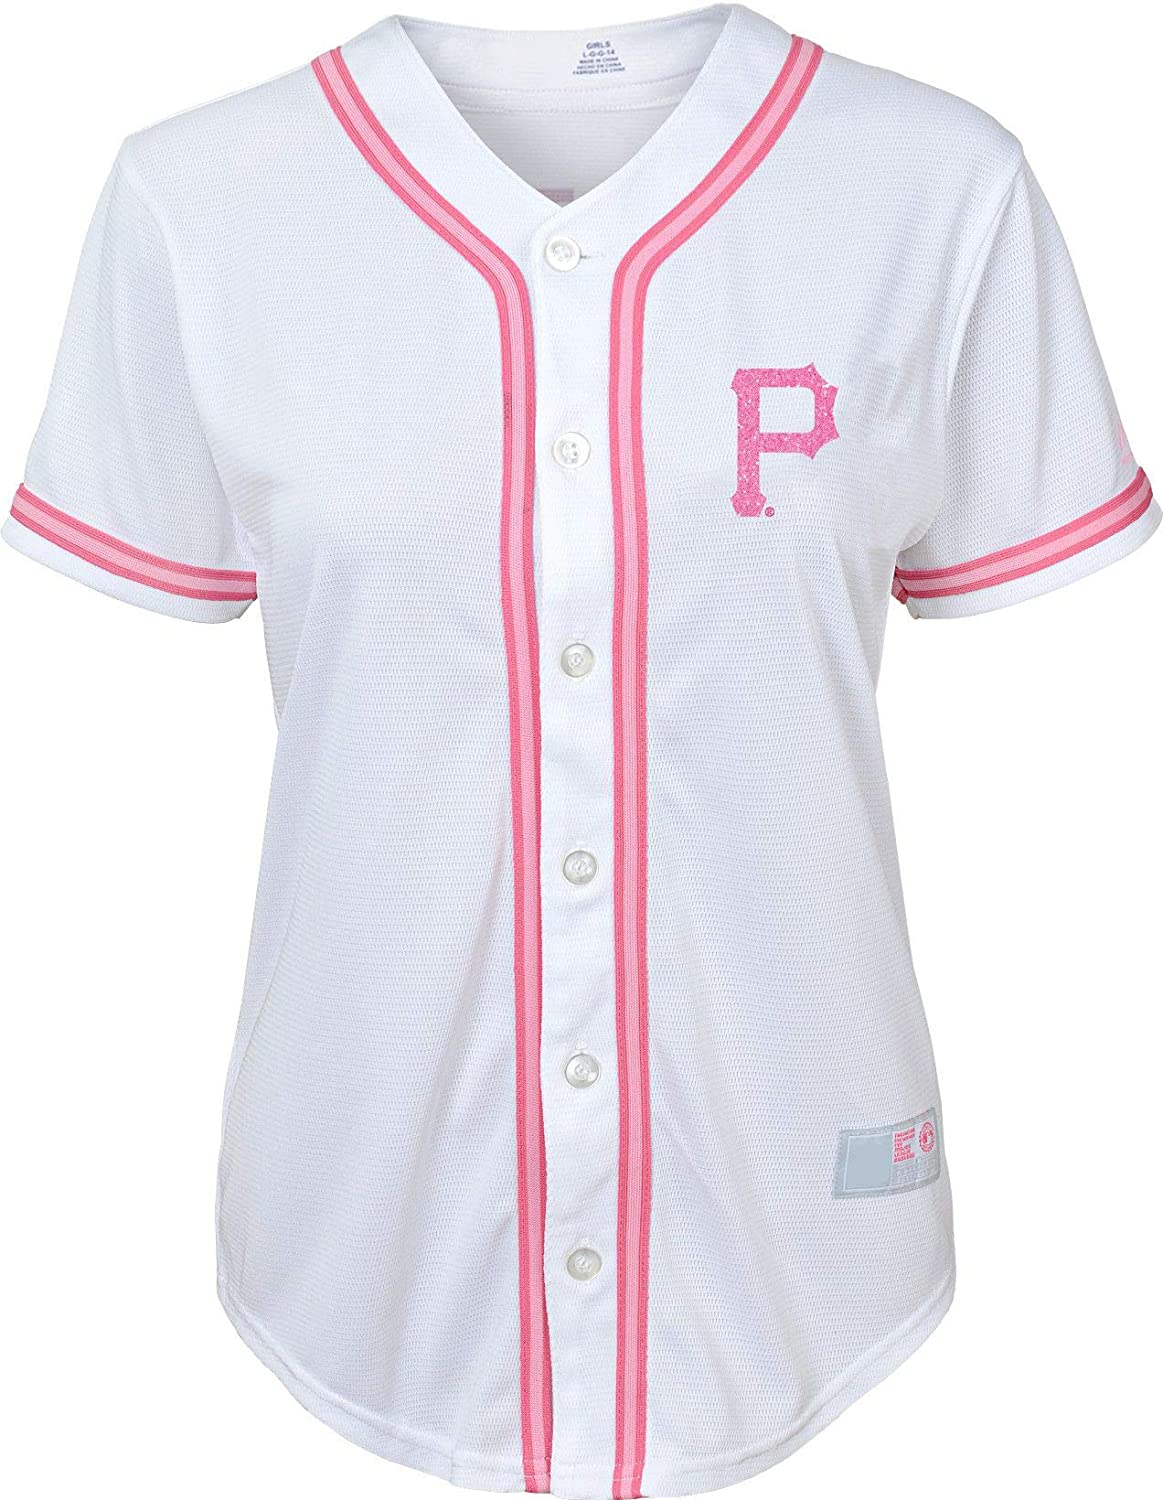 b49c56639bb Amazon.com  Outerstuff Pittsburgh Steelers Girls Youth White Pink Cool Base  Blank Jersey  Clothing